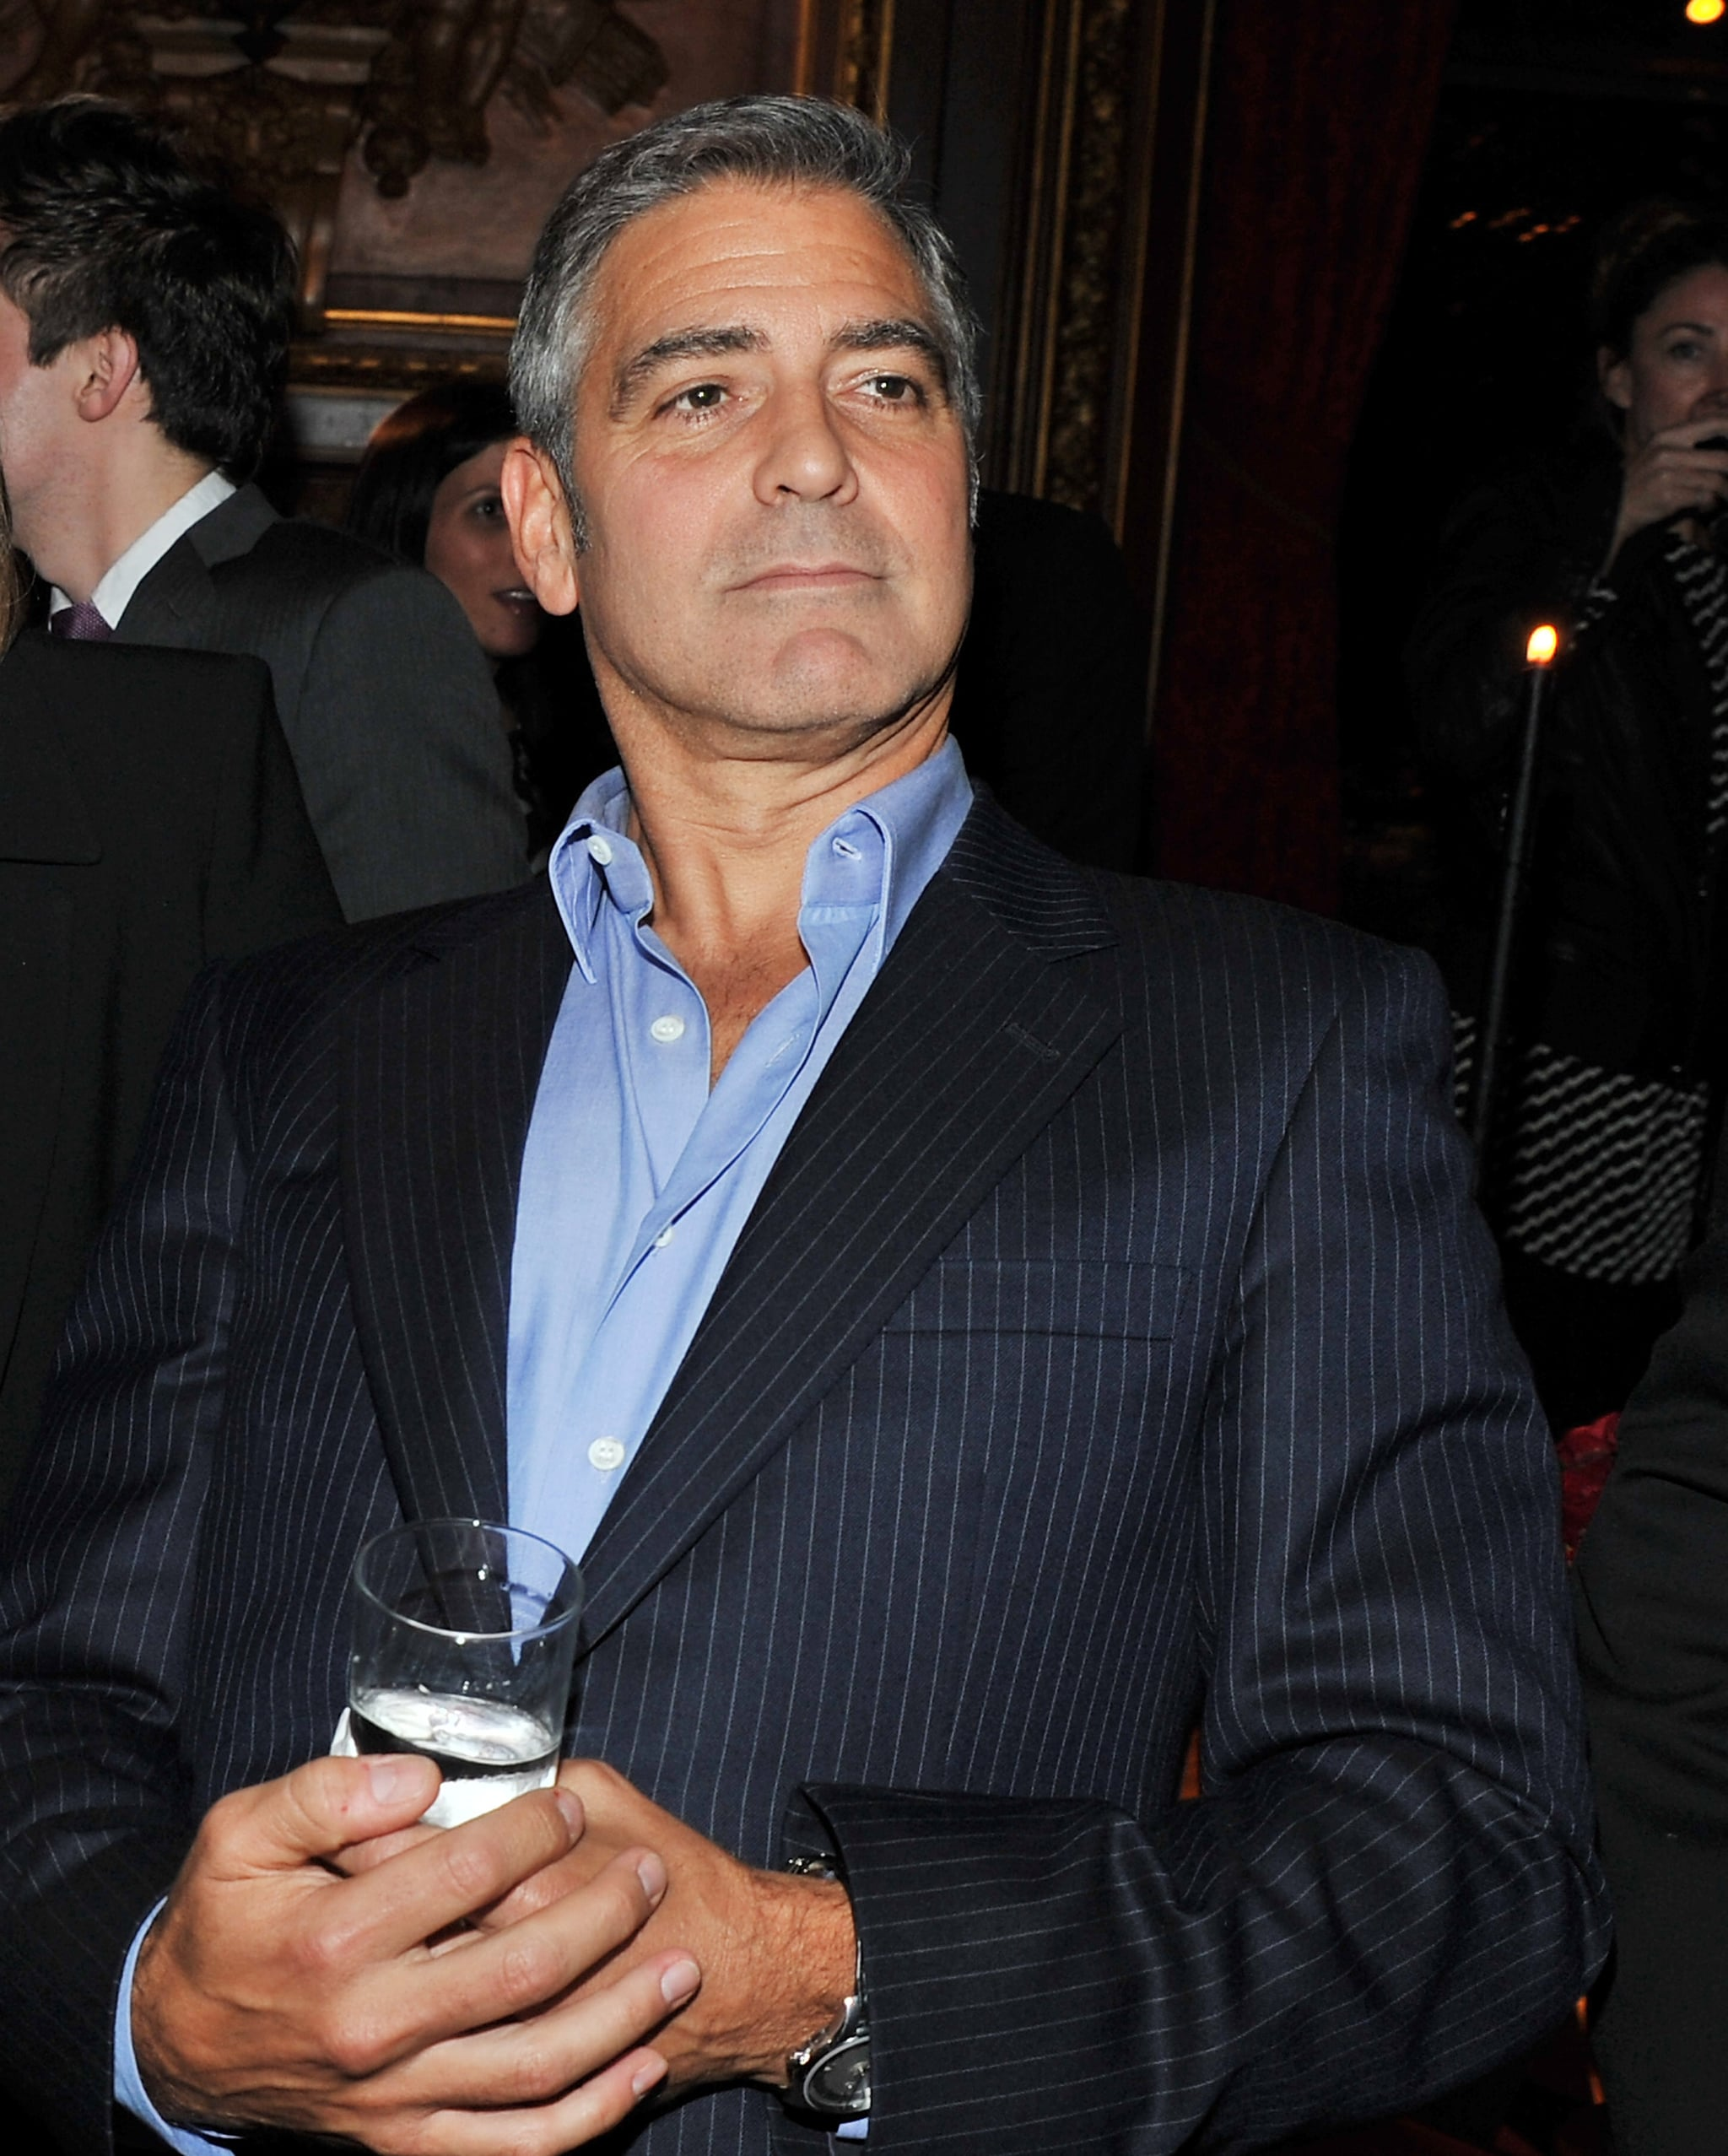 George Clooney surveyed the scene at The Ides of March afterparty in NYC.